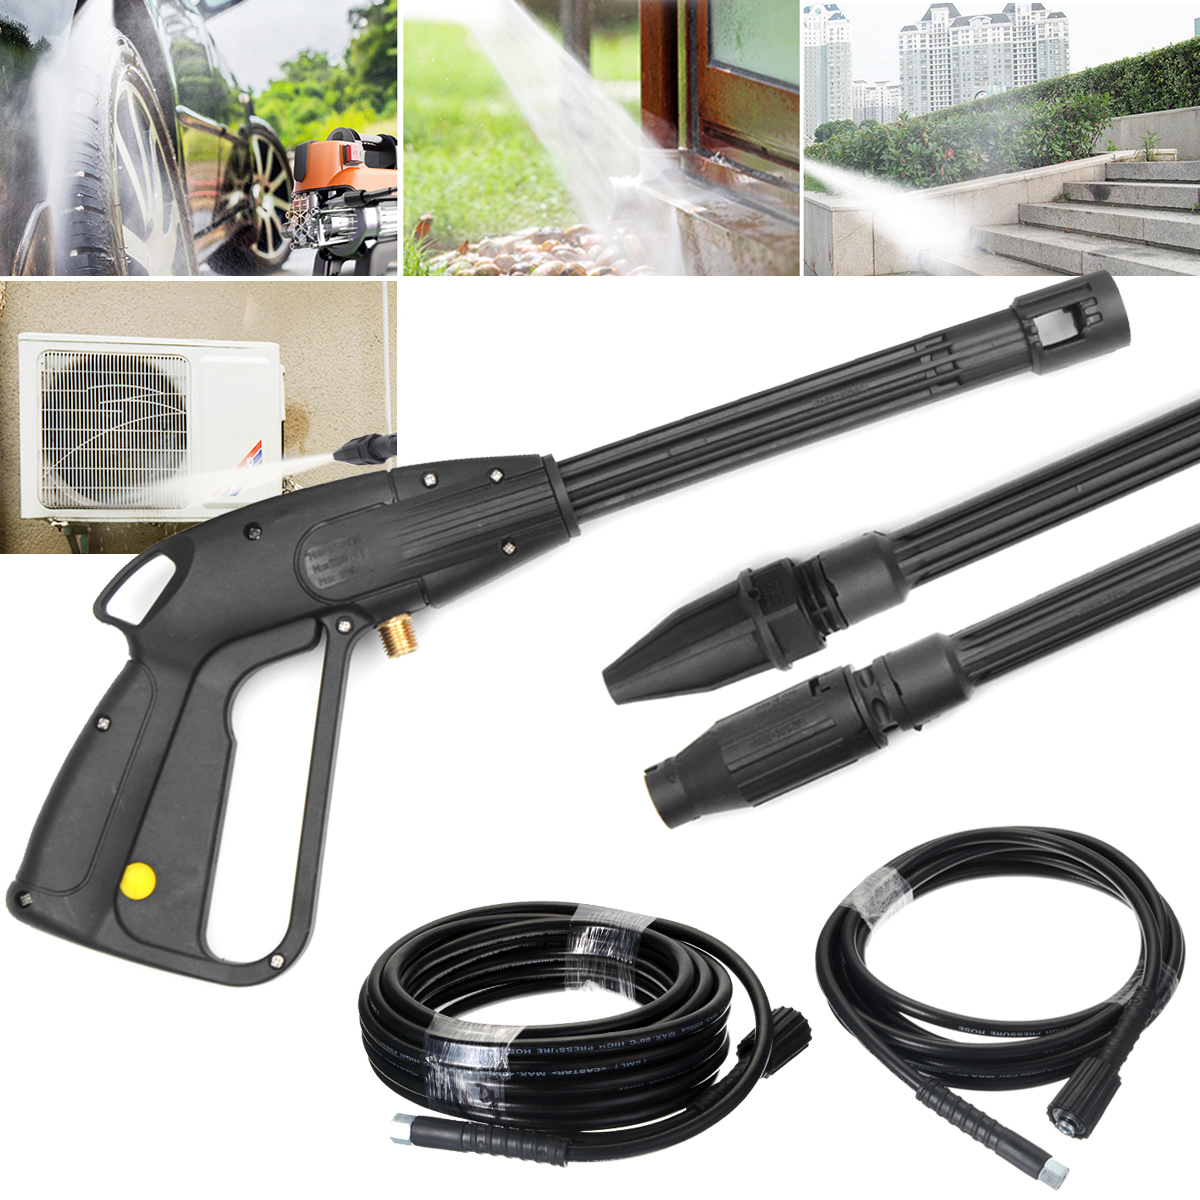 High Pressure Power Washer Spray Nozzle Adjust Water-Gun Lance/ 5/10M Washer Extension Jet Hose M22XM14 Connector Replacement